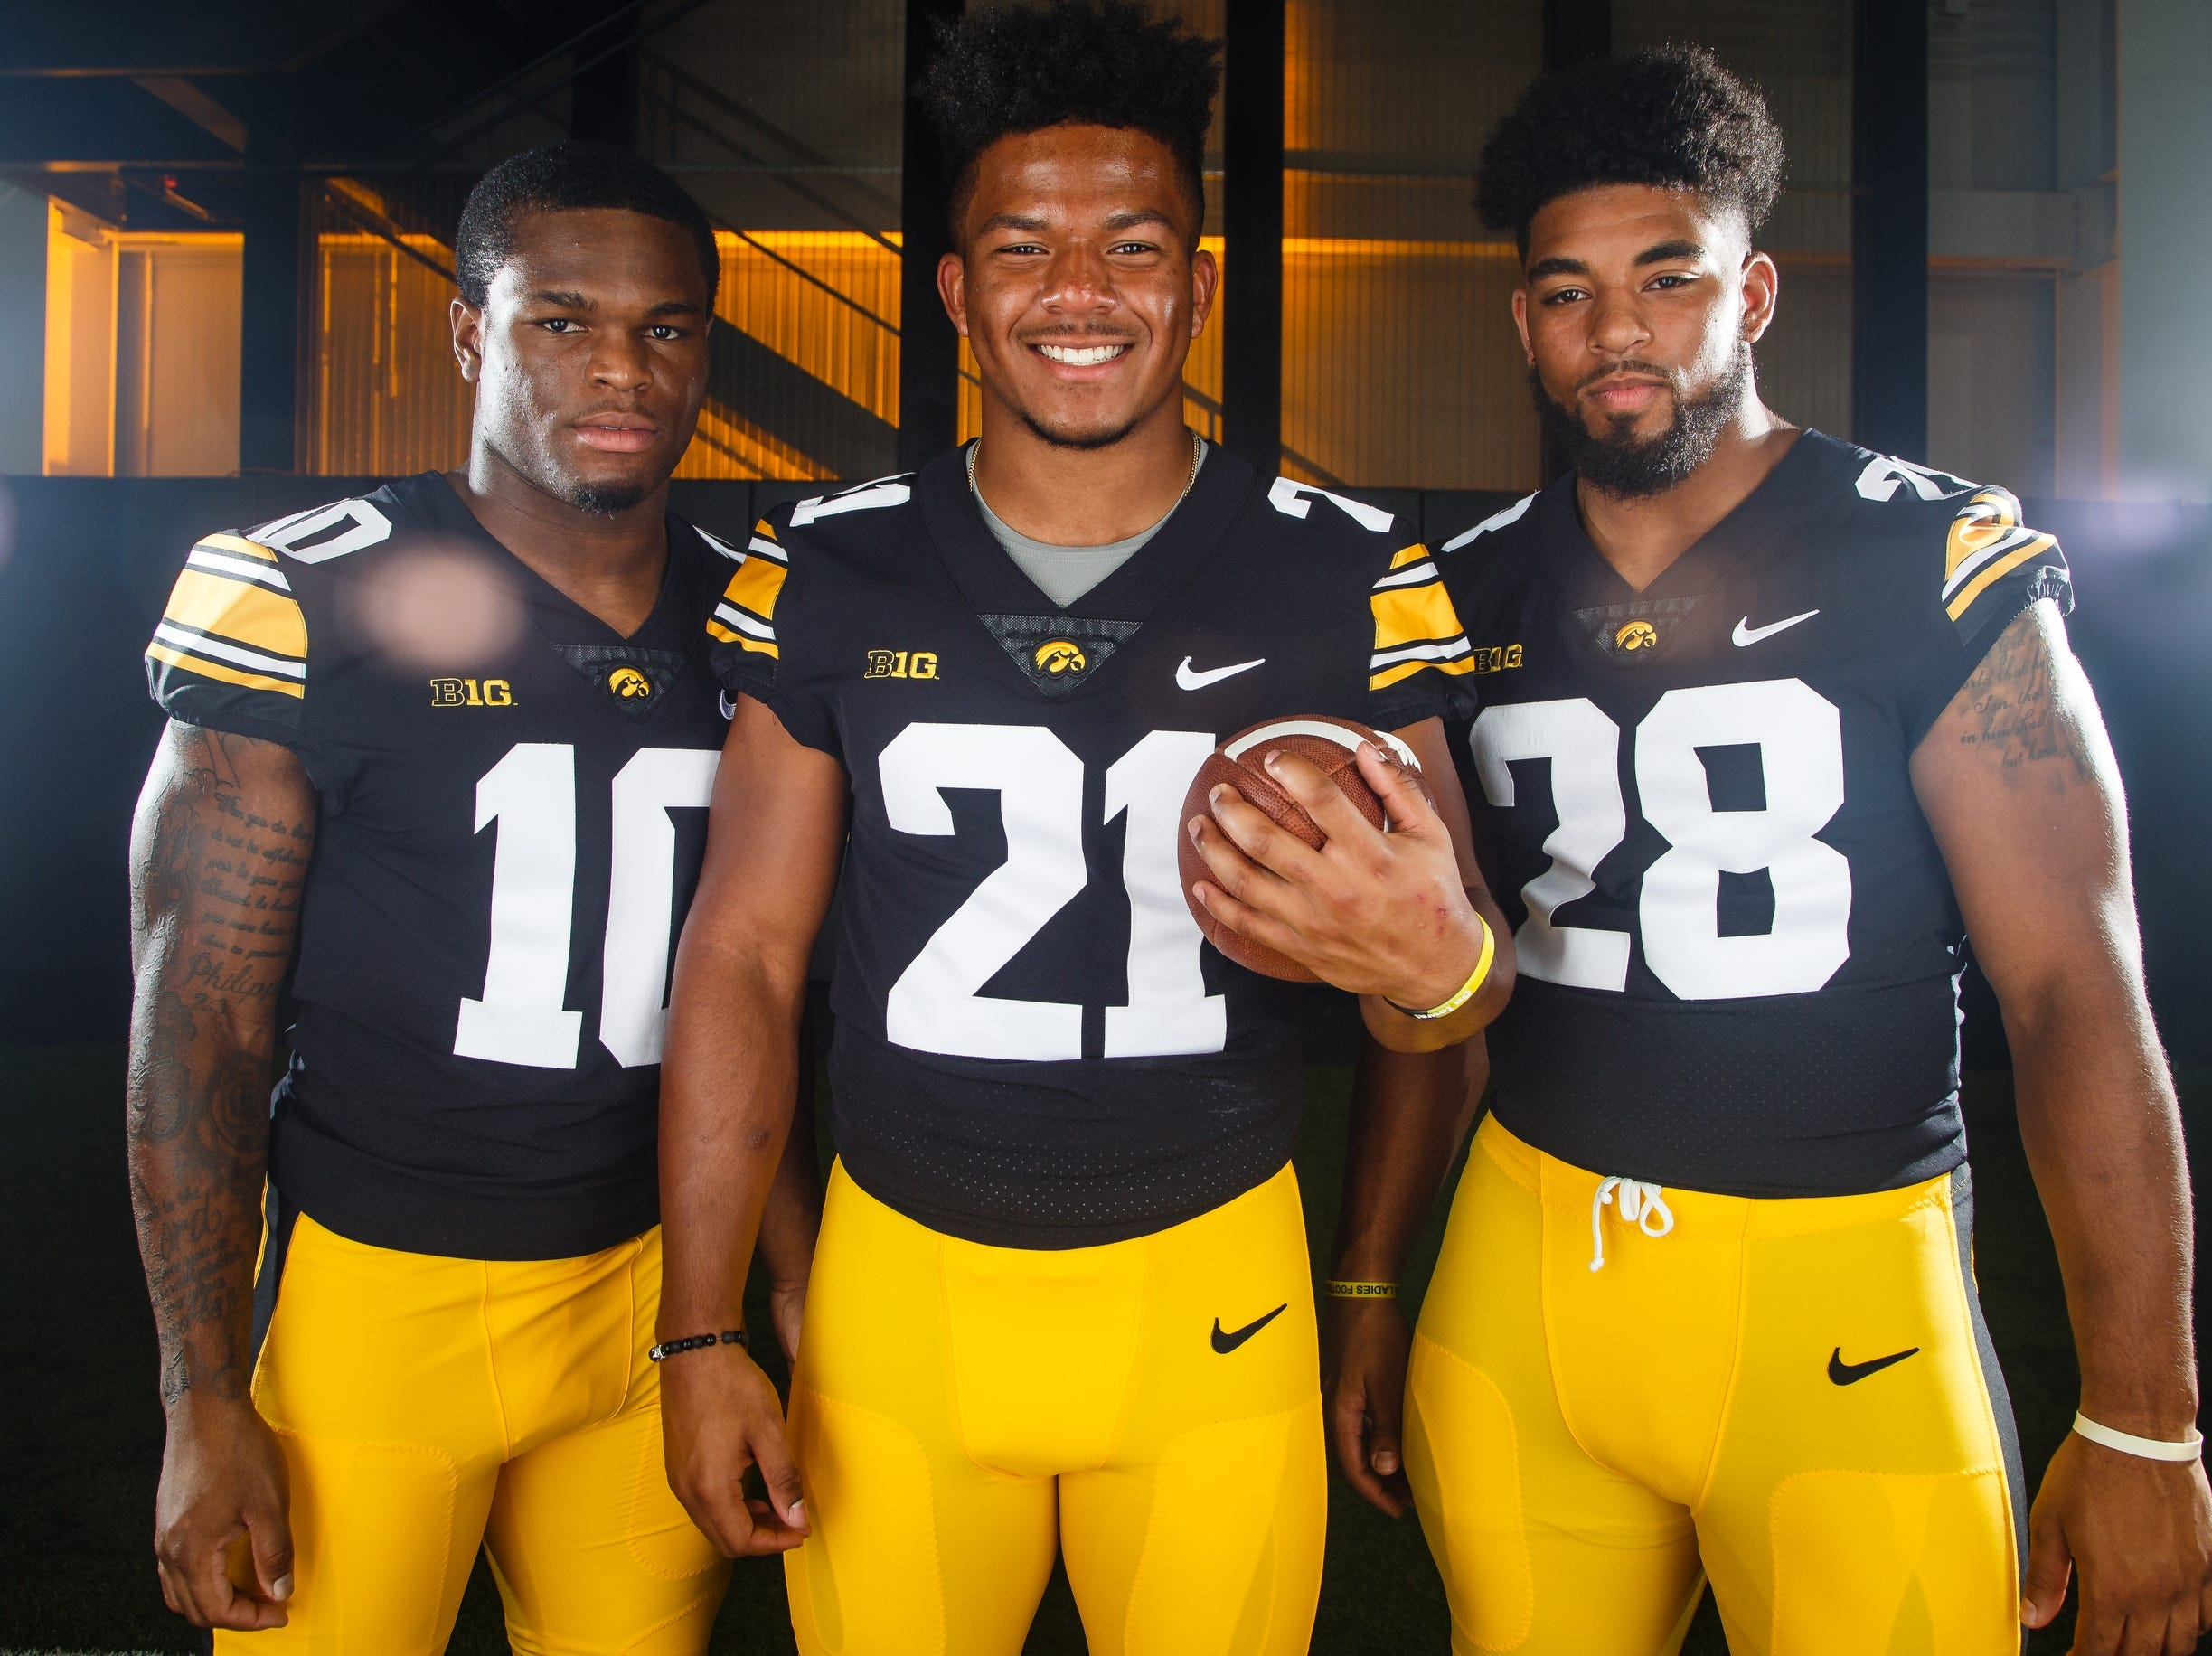 Iowa's Mekhi Sargent, left, Ivory Kelly-Martin, center and Toren Young, right, pose for a photo during the Iowa Football media day on Friday, Aug. 10, 2018 in Iowa City.